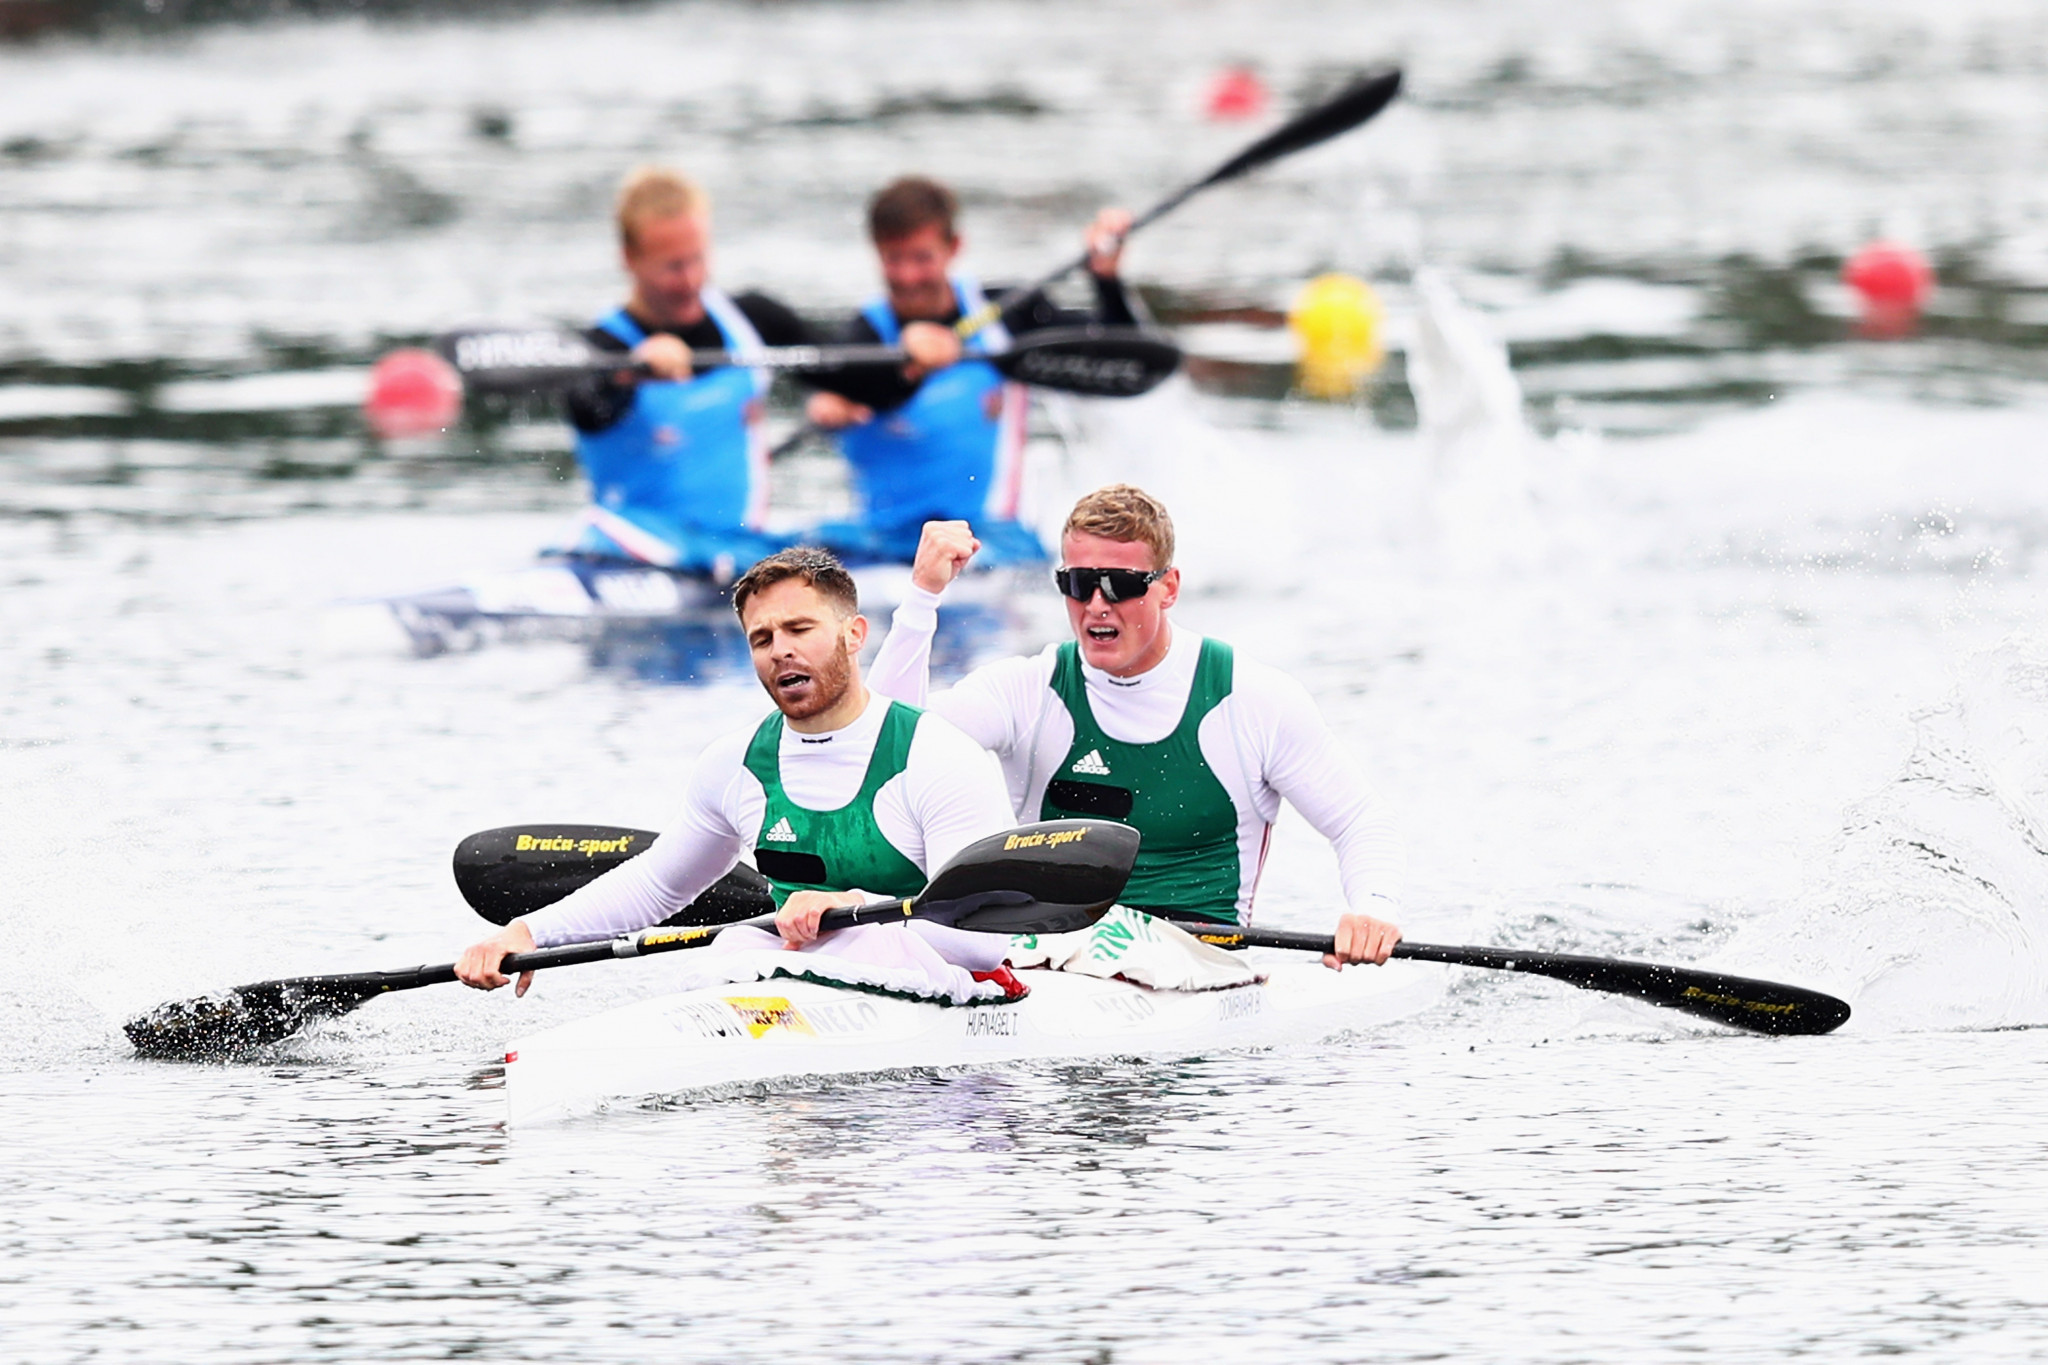 Bence Dombvari, right, and Tibor Hufnagel, of Hungary, celebrate after they compete in the K2 M 1000 during Day 2 of the European Canoe Sprint Olympic Qualifying held at Sportpark Regattabahn in May 2016 in Duisburg ©Getty Images